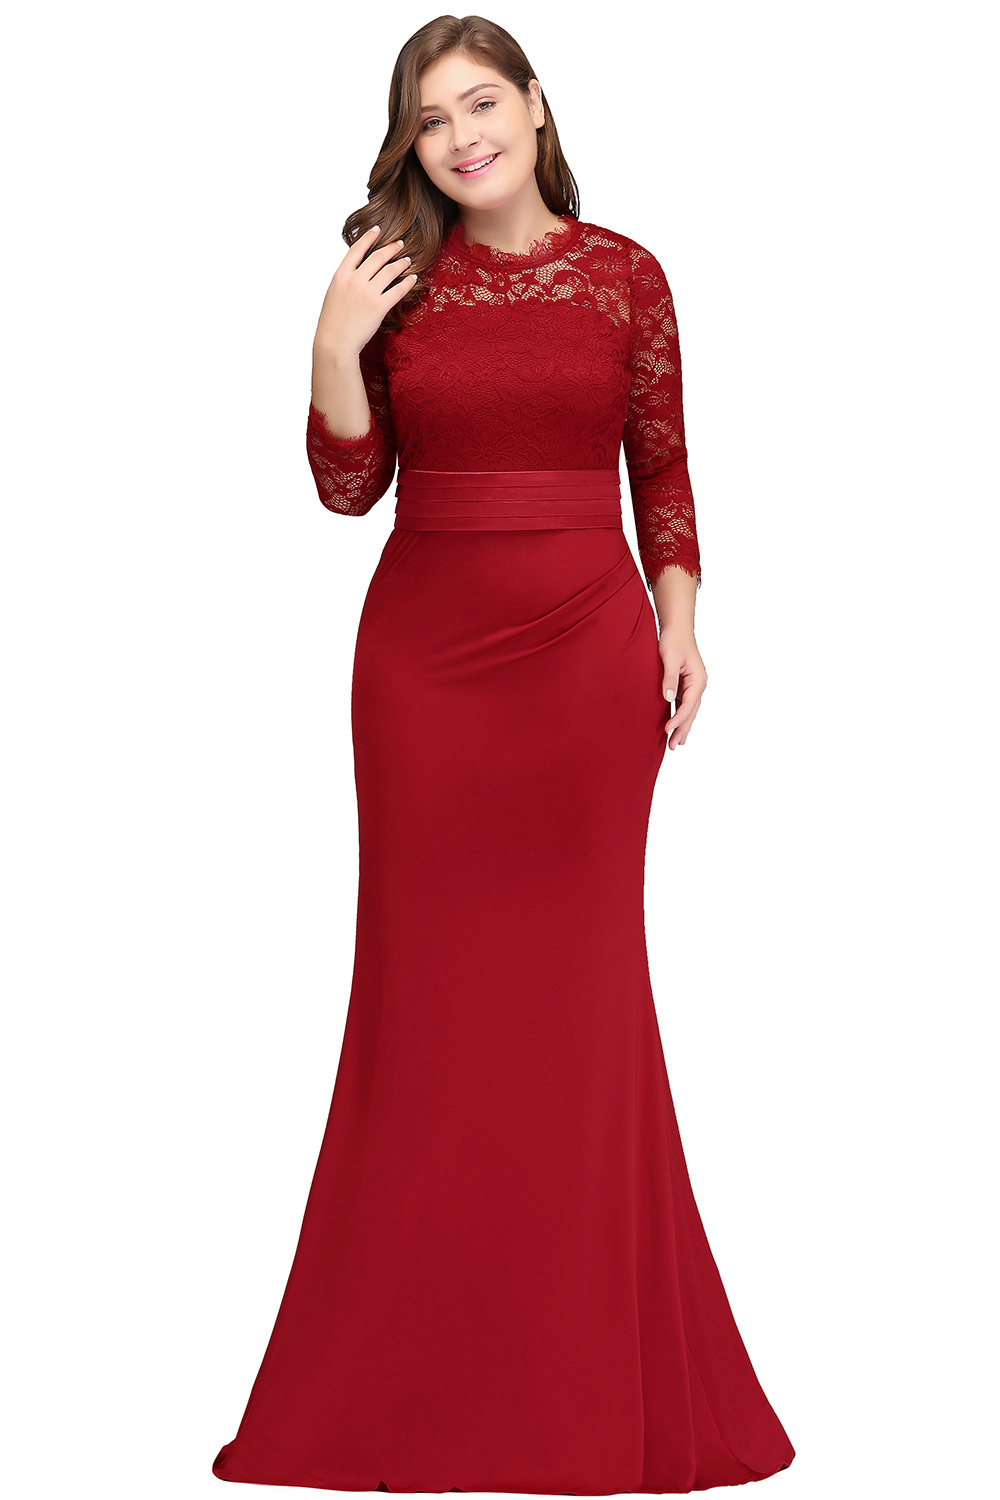 2019 Navy Plus Size Long Mother Of The Bride Dresses Mermaid Scoop Neck 3/4 Sleeve Wedding Party Gown